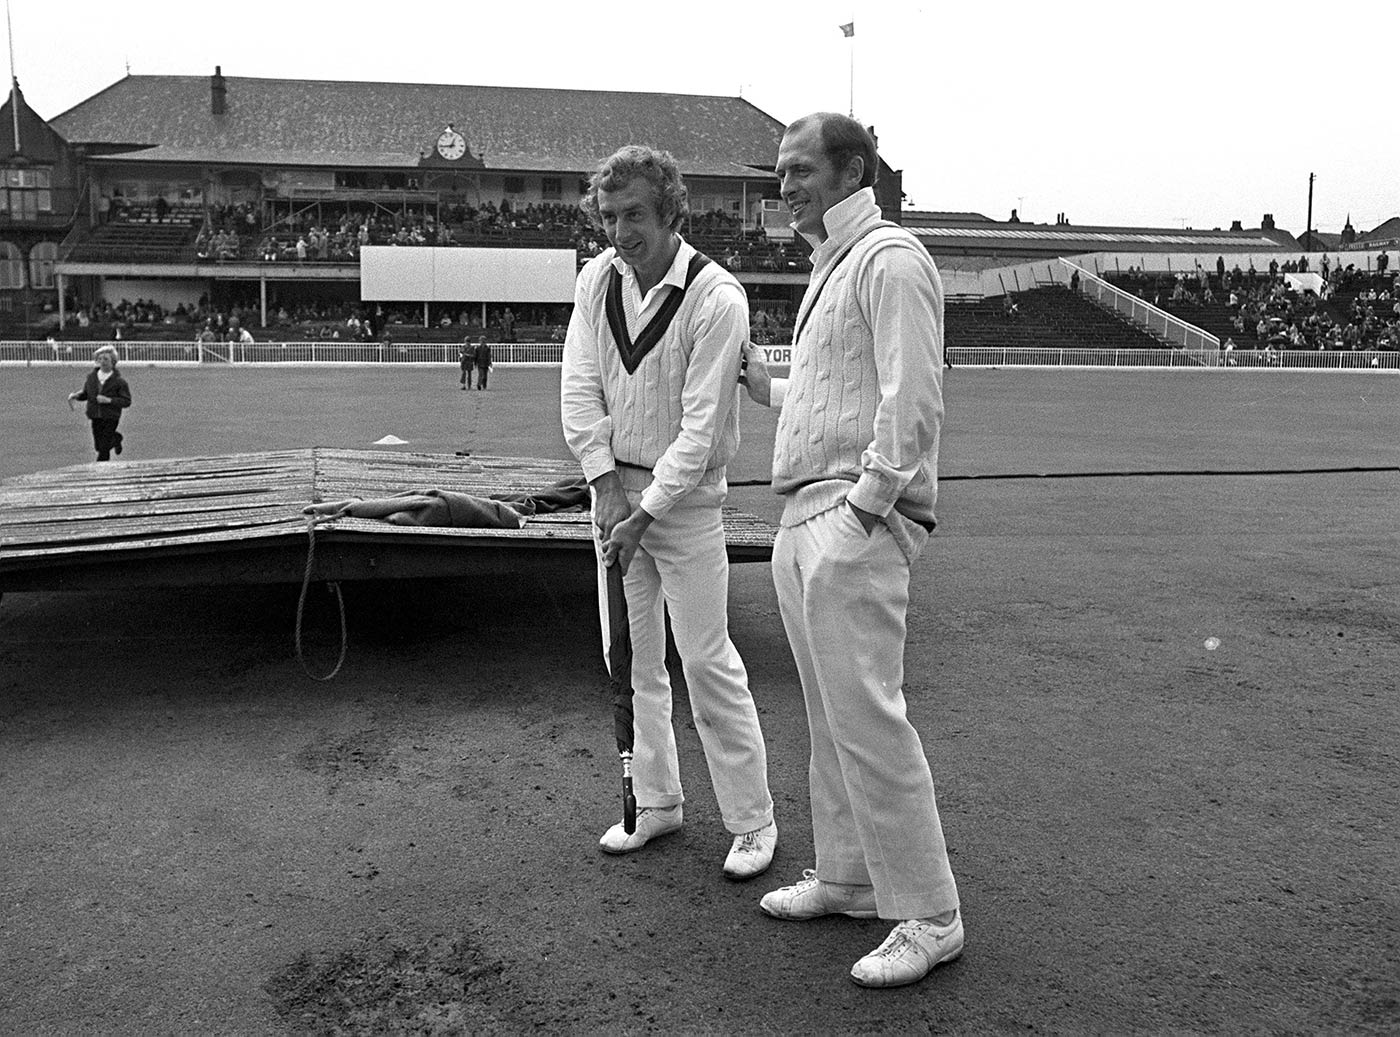 It's all in the voice: northern legends David Lloyd and Geoff Boycott are distinctive in their books as in real life